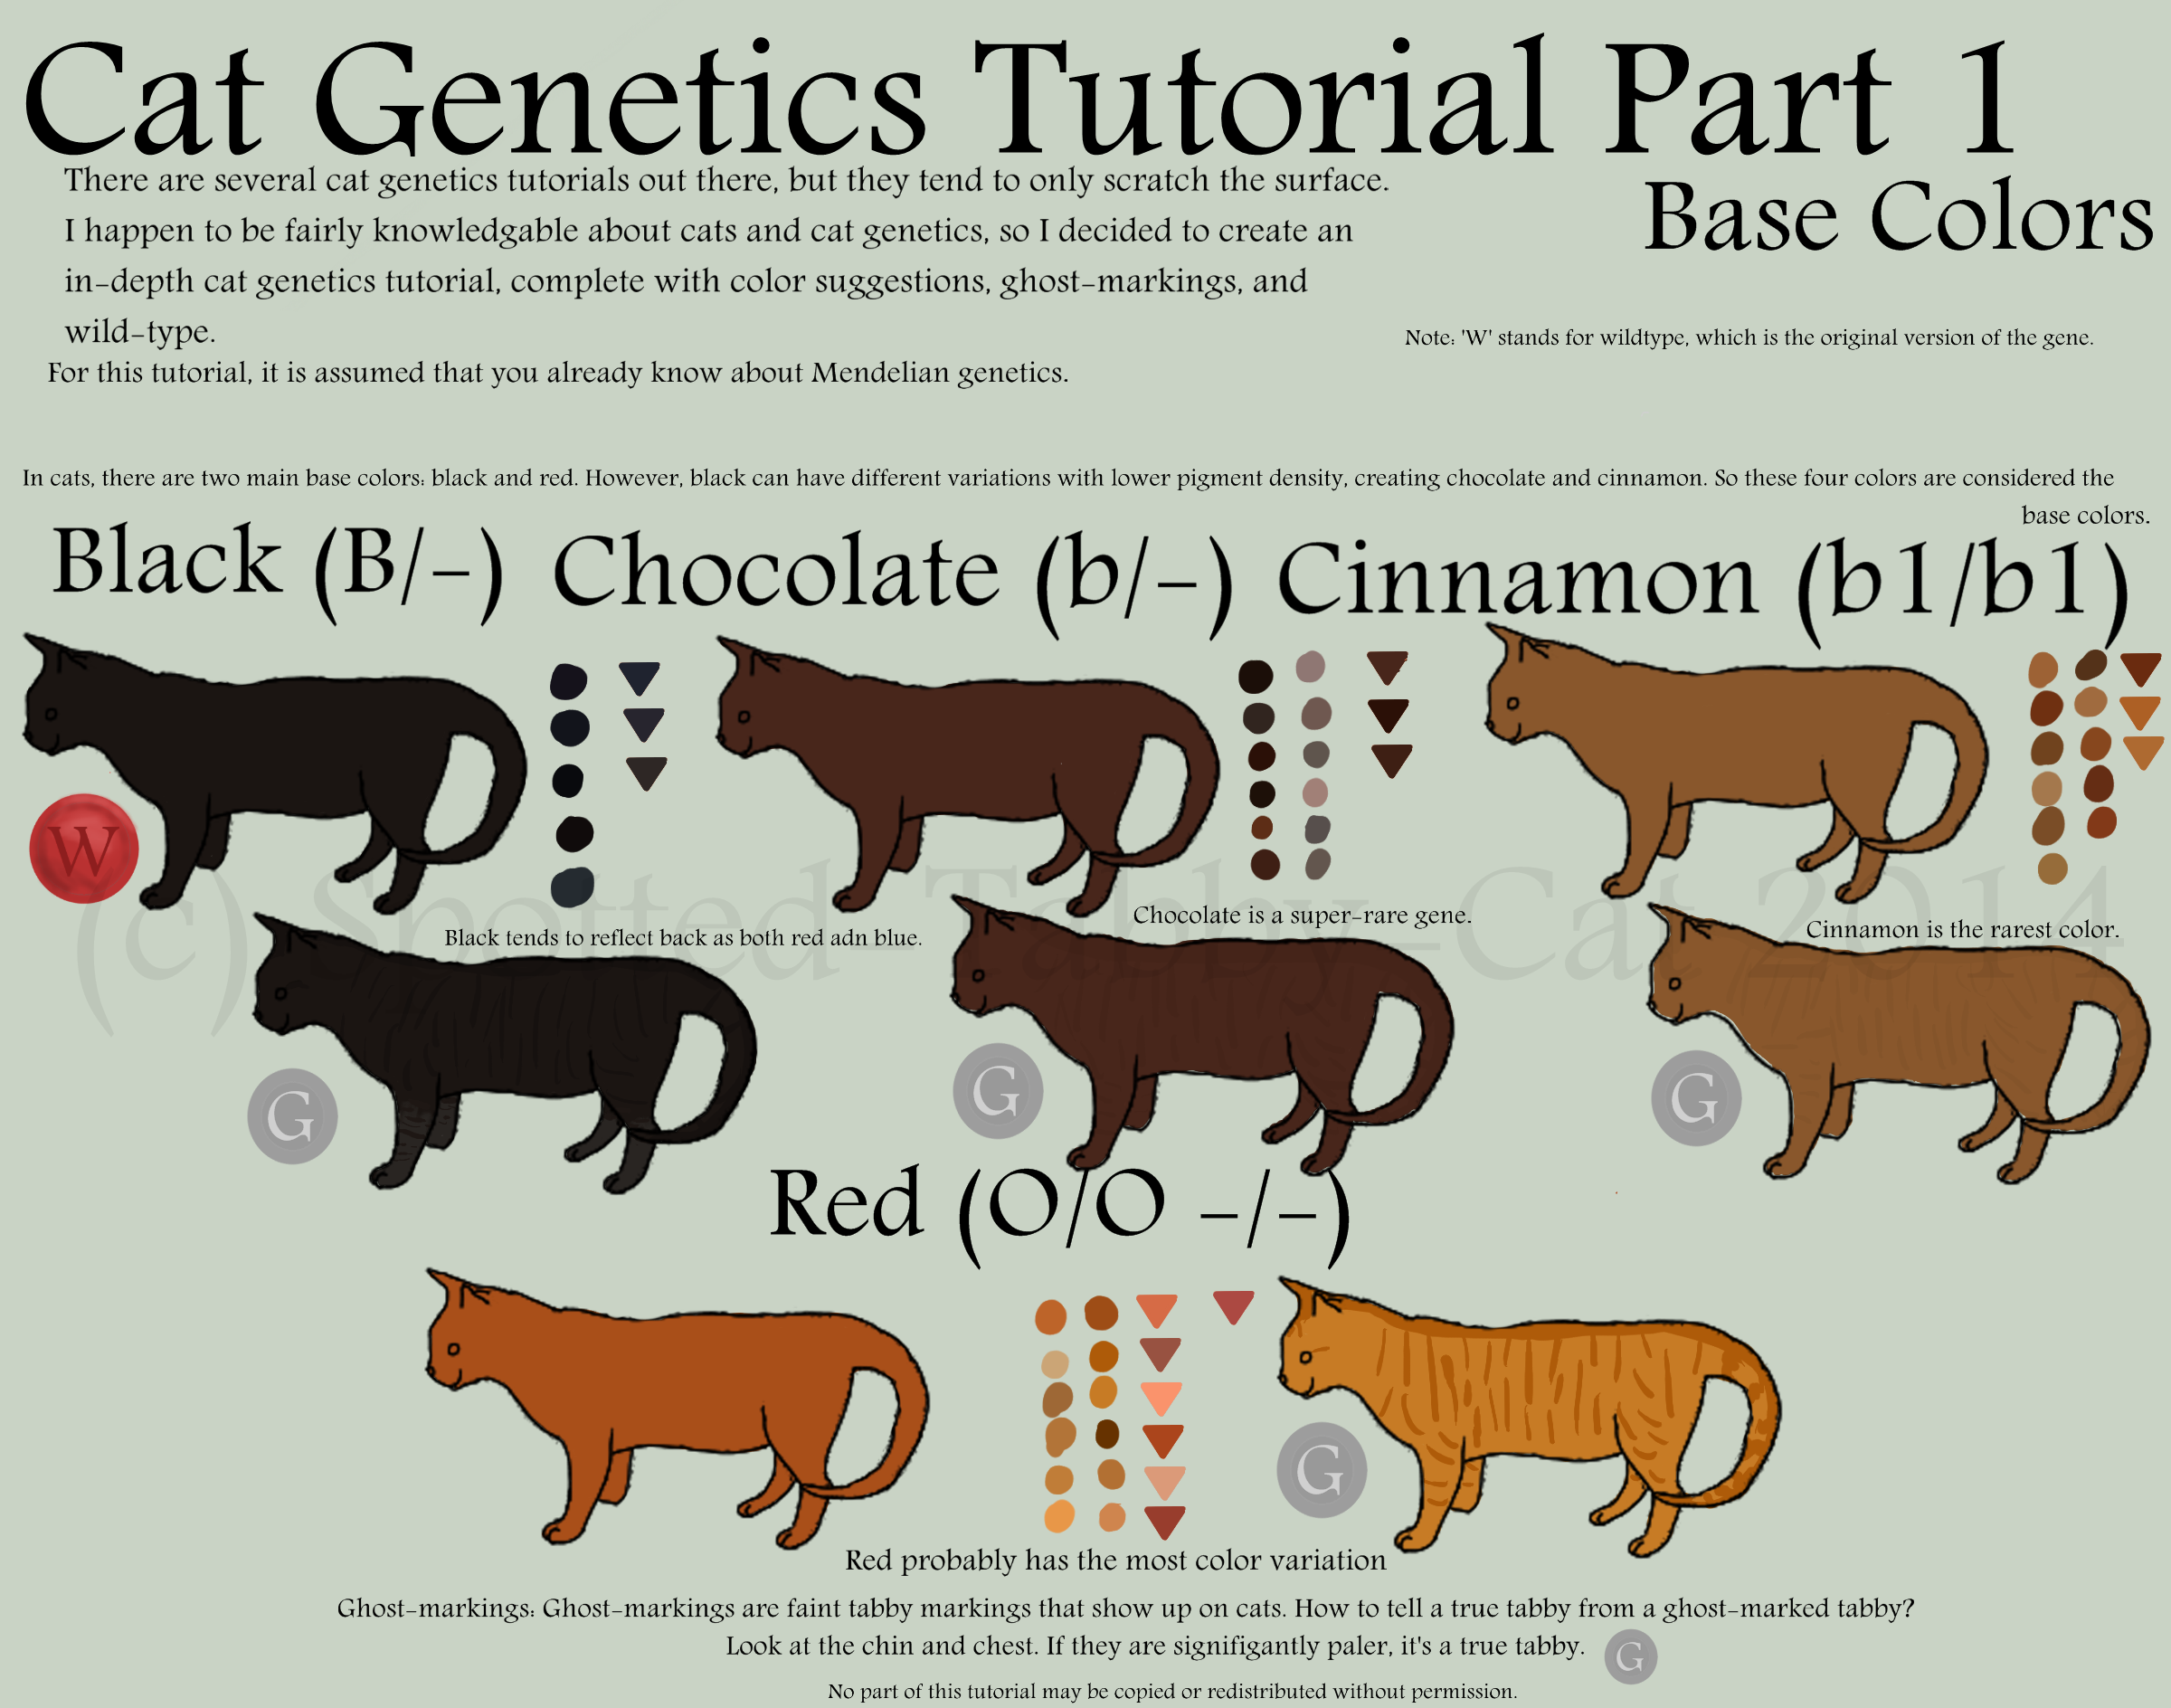 Cat Genetics Tutorial Part 1 Base Colors By Spotted